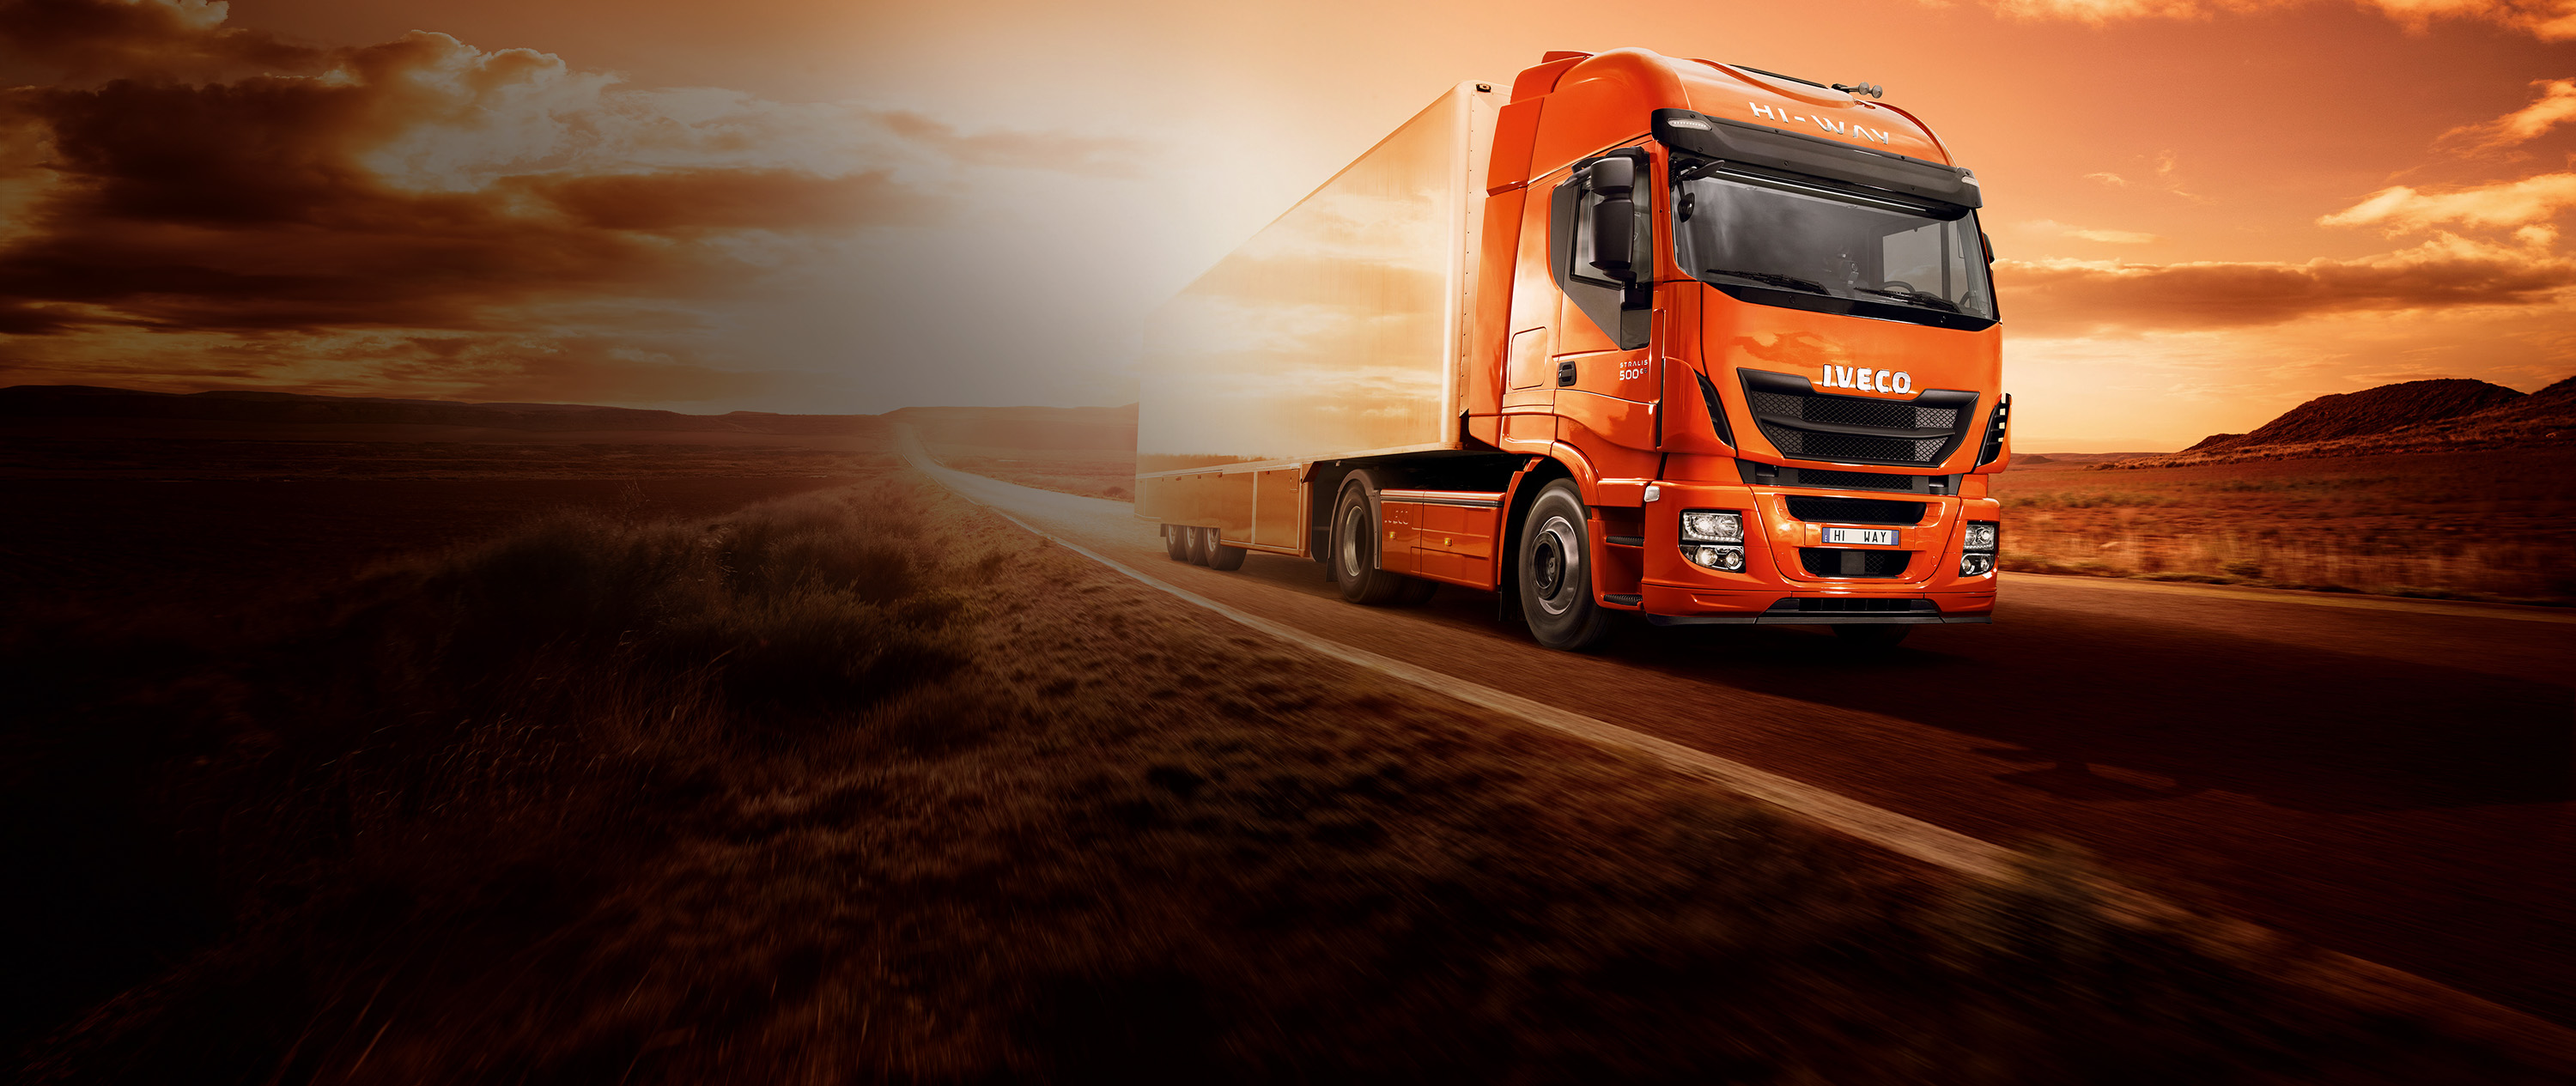 home-camion-01